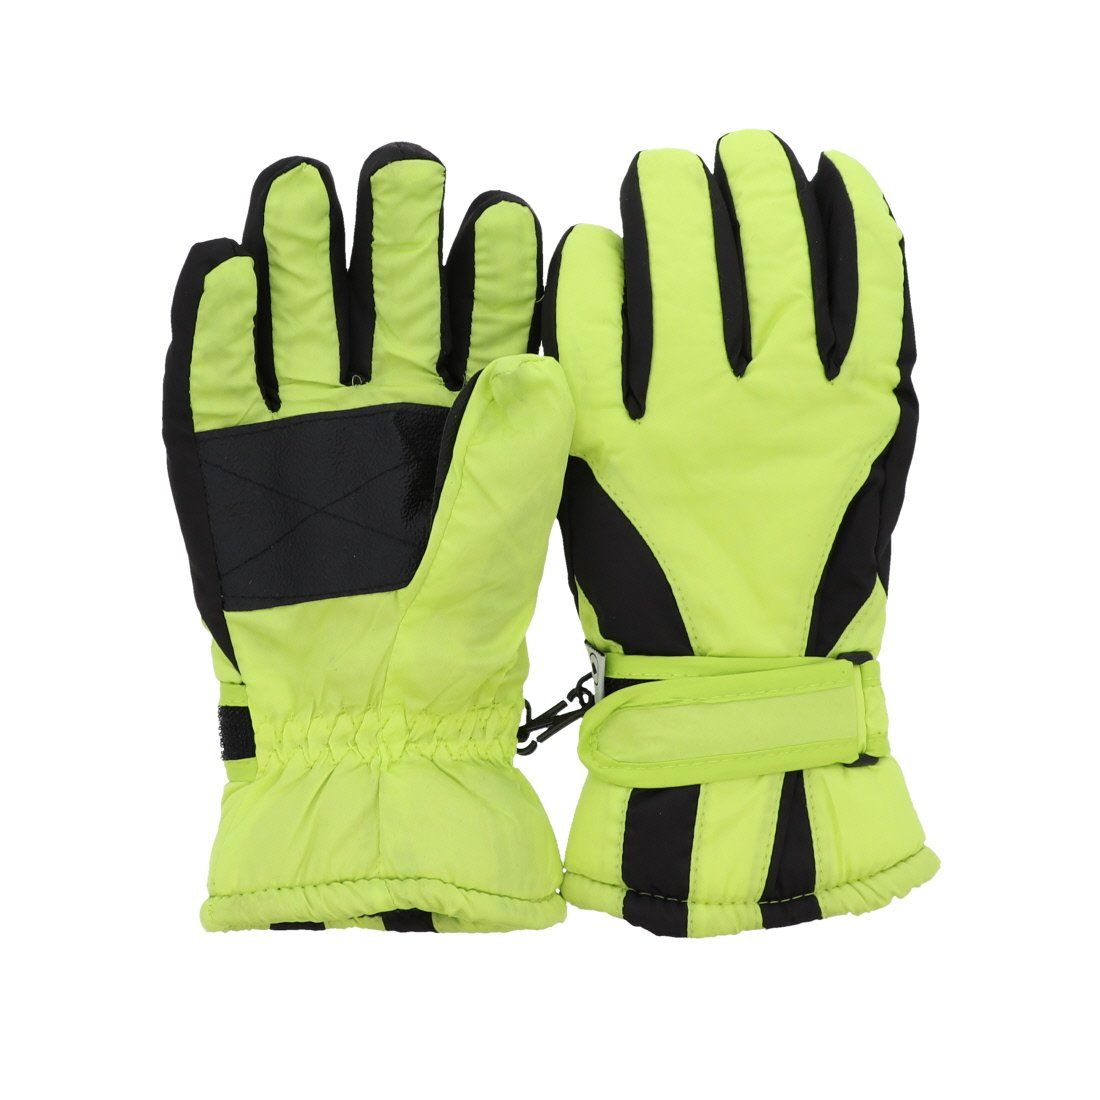 Waterproof Slant Design Ski Gloves for Youth - Neon Yellow MTGL0053NY